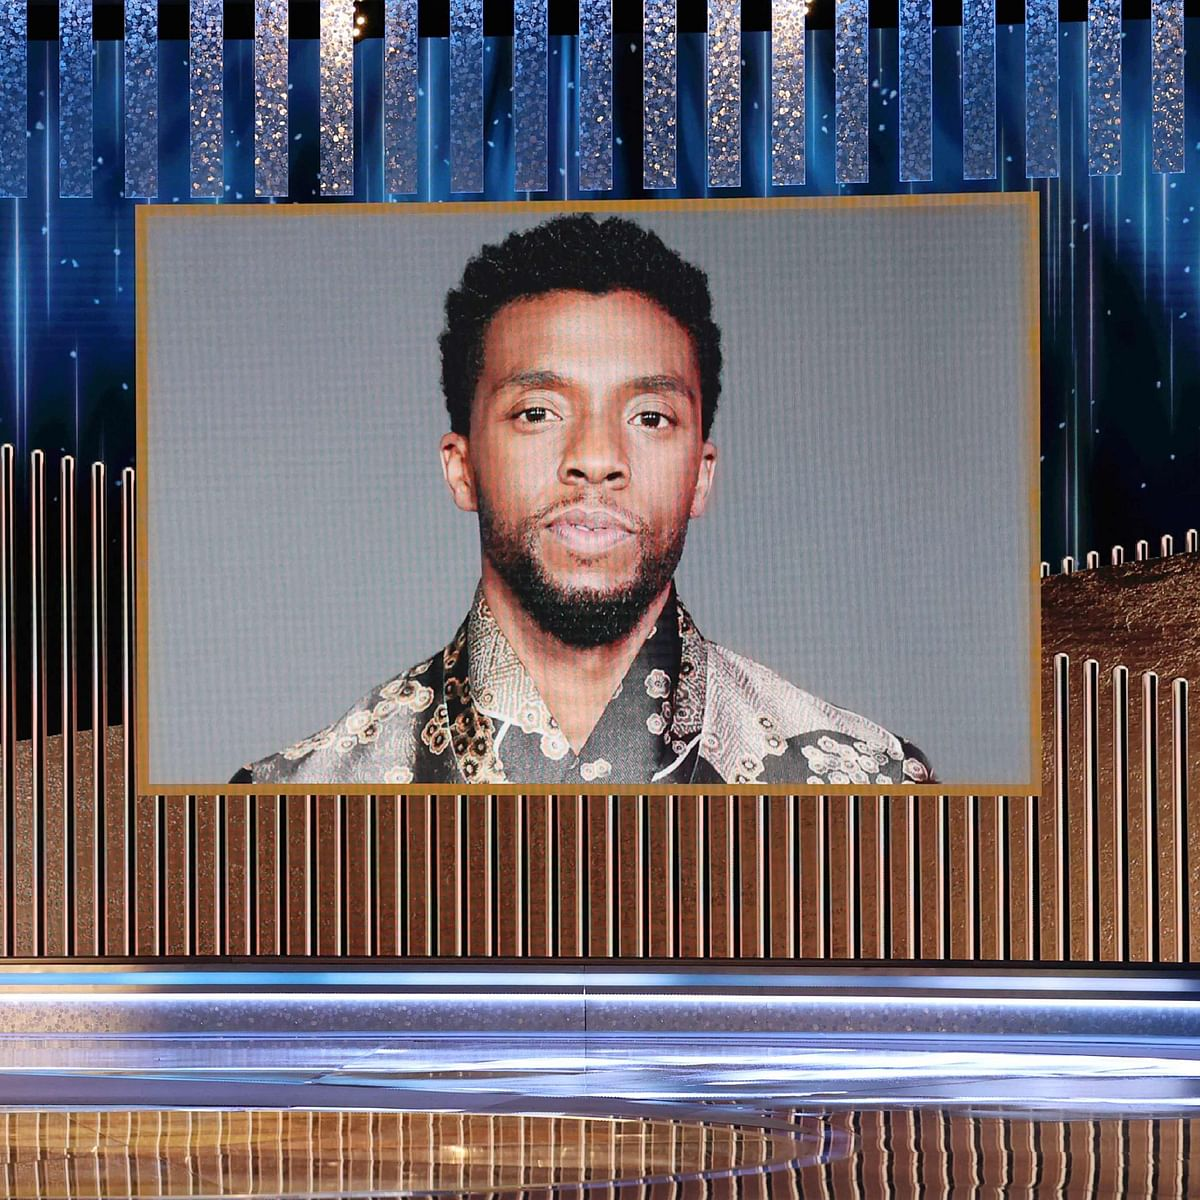 Golden Globes 2021: Chadwick Boseman posthumously honoured as Best Actor in Motion Picture- Drama for 'Ma Rainey's Black Bottom'